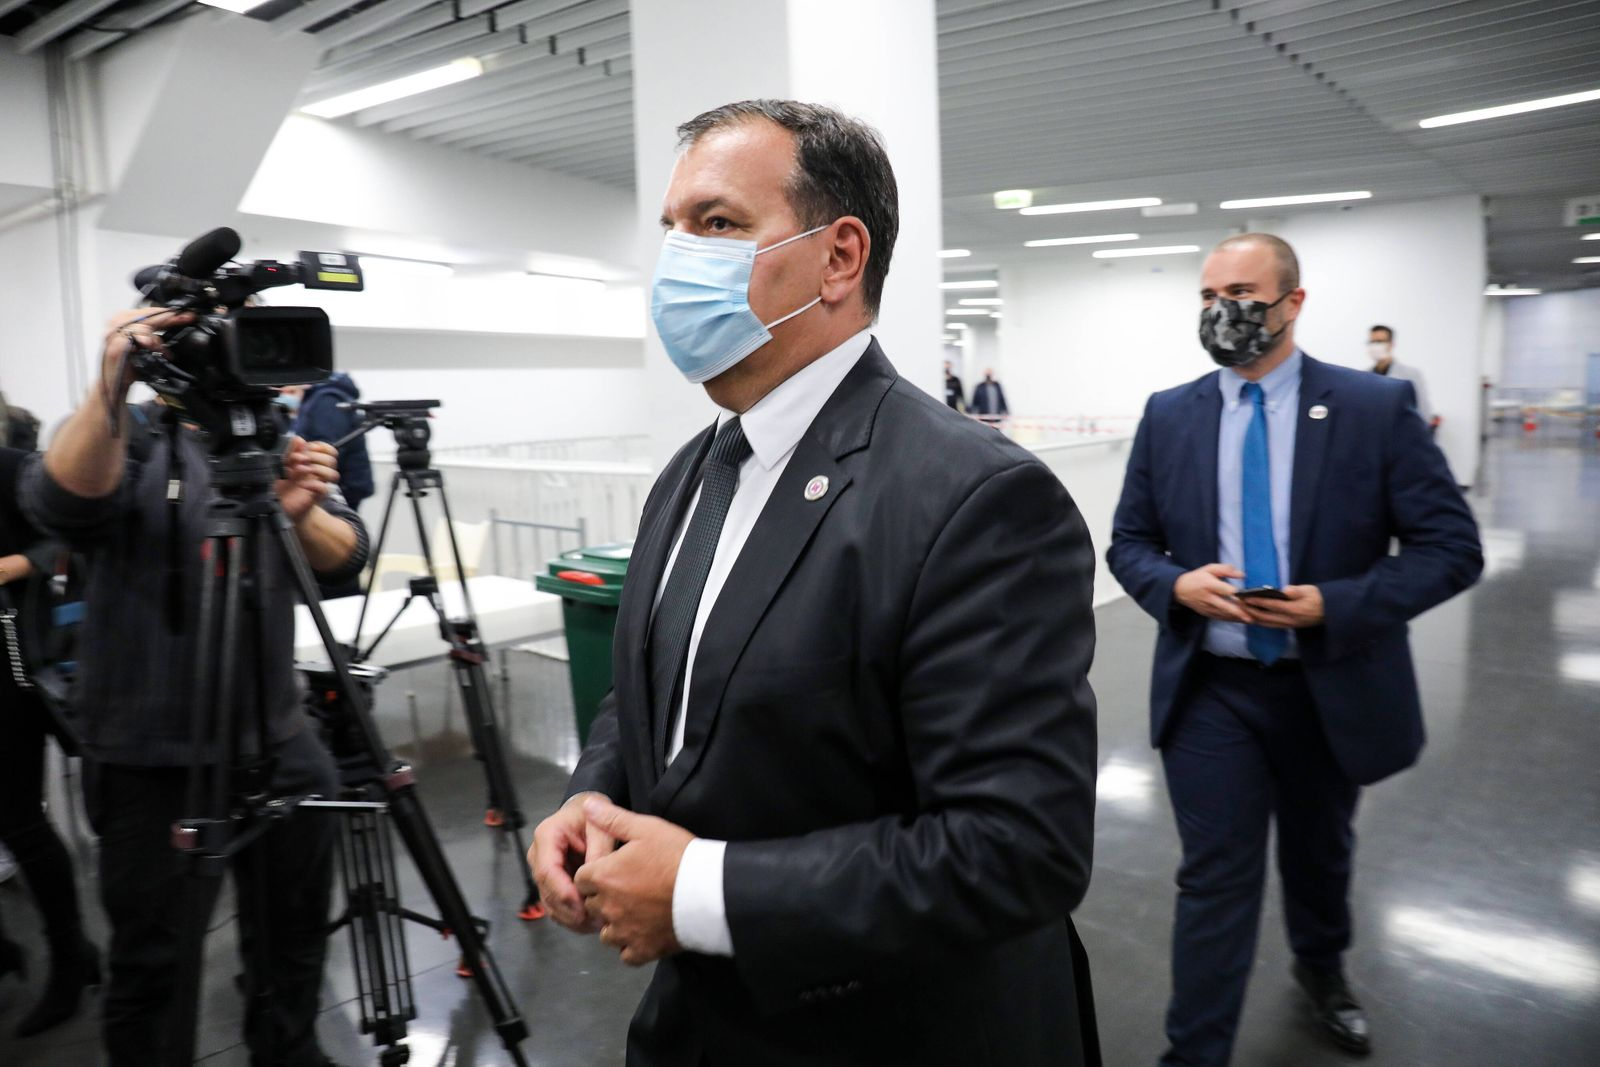 Arena Zagreb converted to a field hospital for people infected with COVID-19 Croatian Minister of Health Vili Beros spe